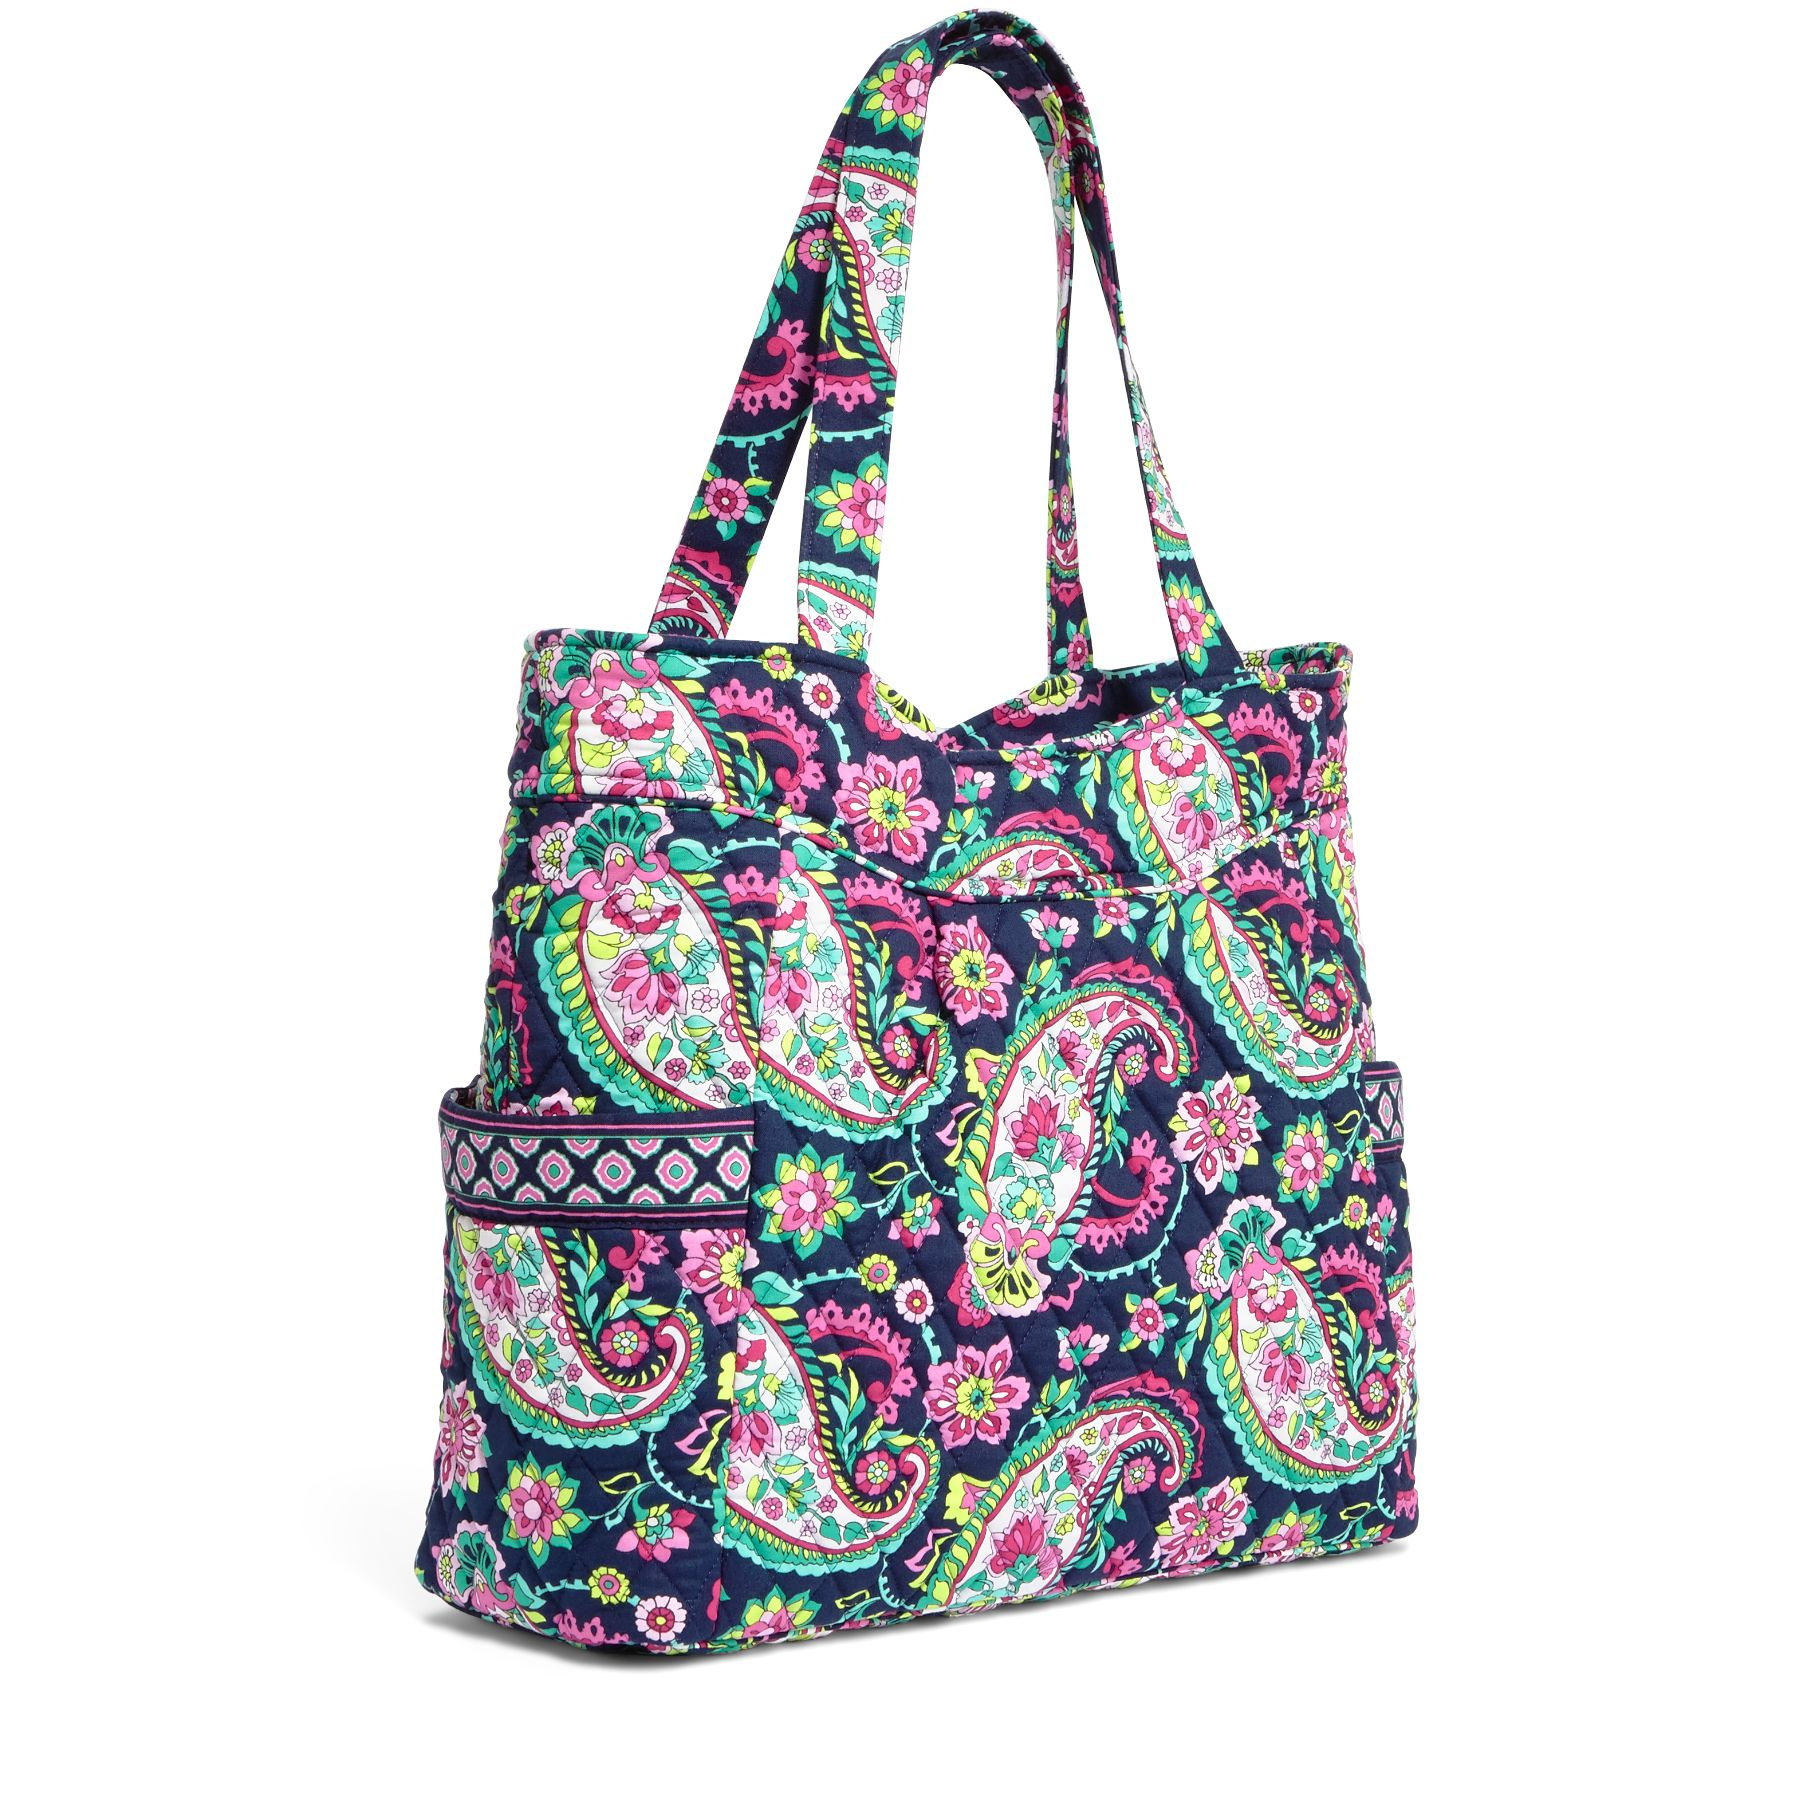 Vera Bradley Tote Bag Tapestry Shoulder